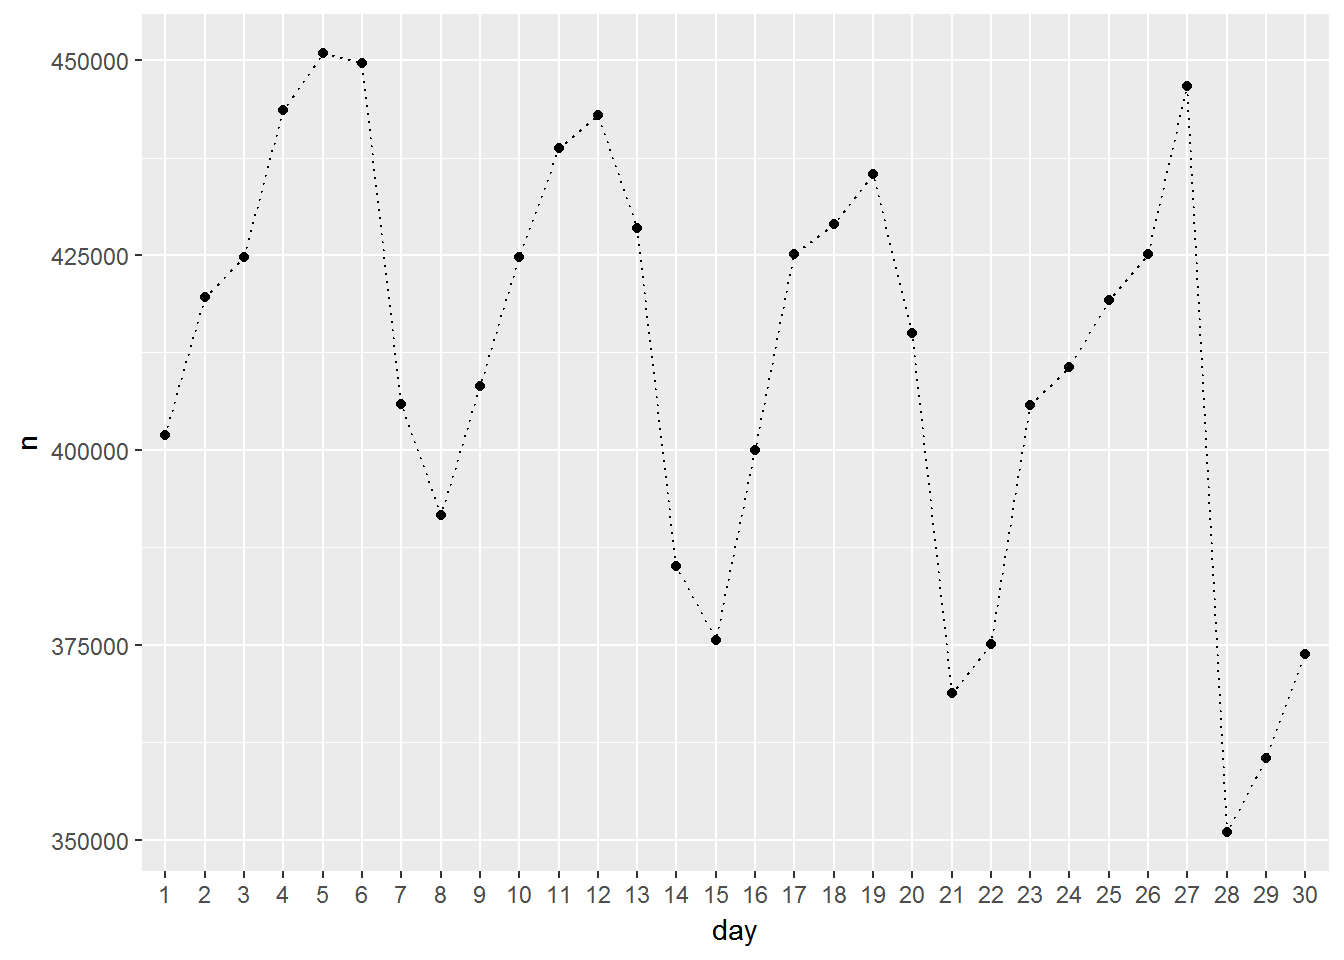 Data Visualization in R using ggplot2